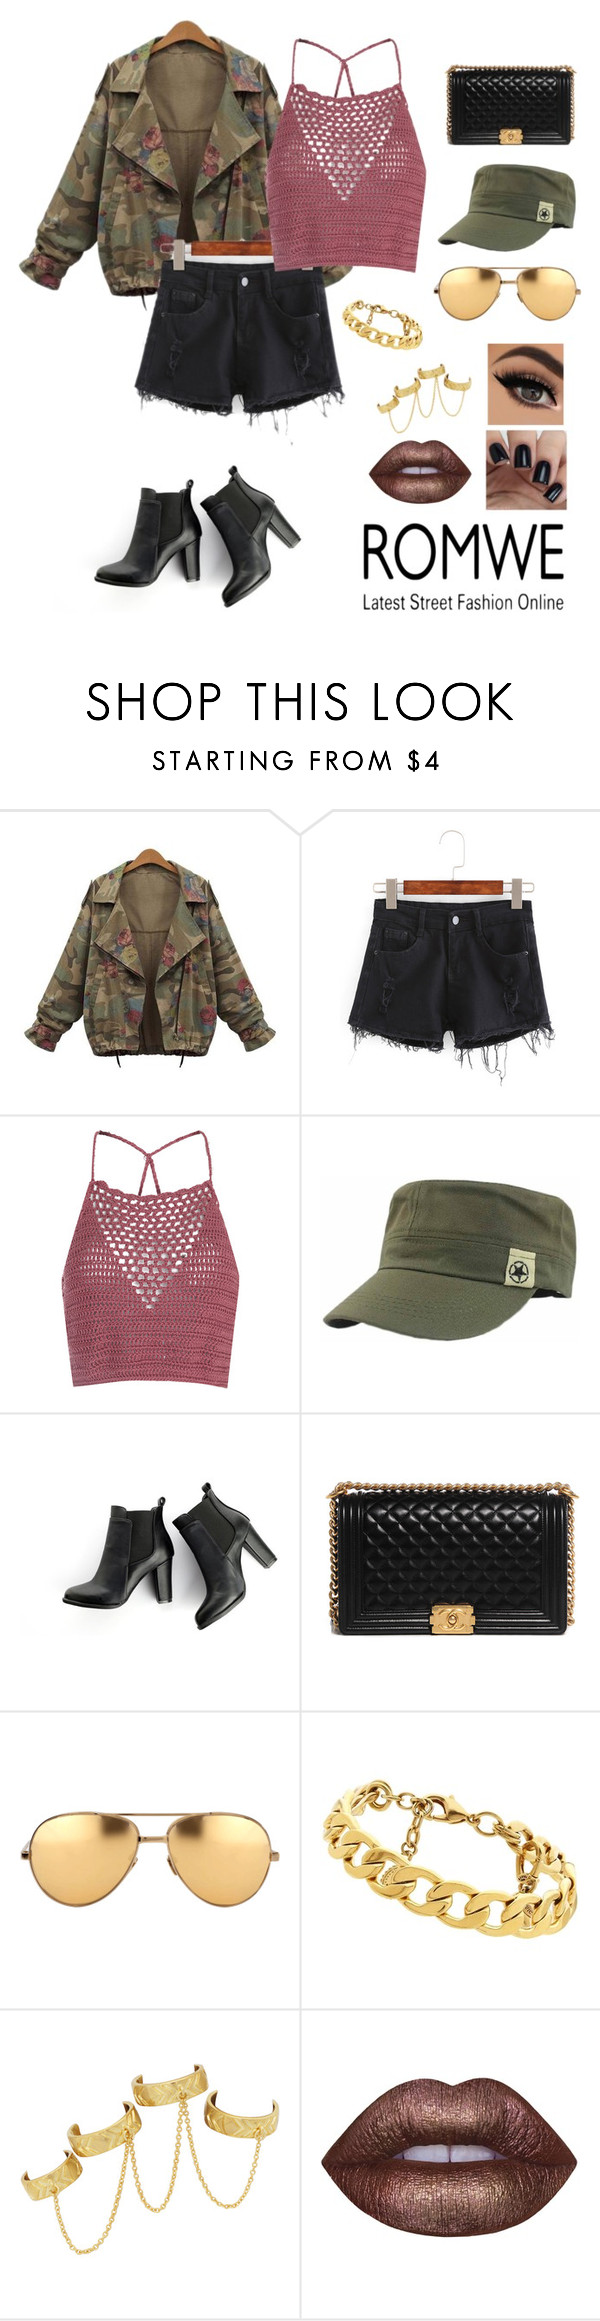 """""""• Rough and Tough •"""" by zootzi ❤ liked on Polyvore featuring Glamorous, SWEET MANGO, Chanel, Linda Farrow, Juicy Couture, House of Harlow 1960 and Lime Crime"""